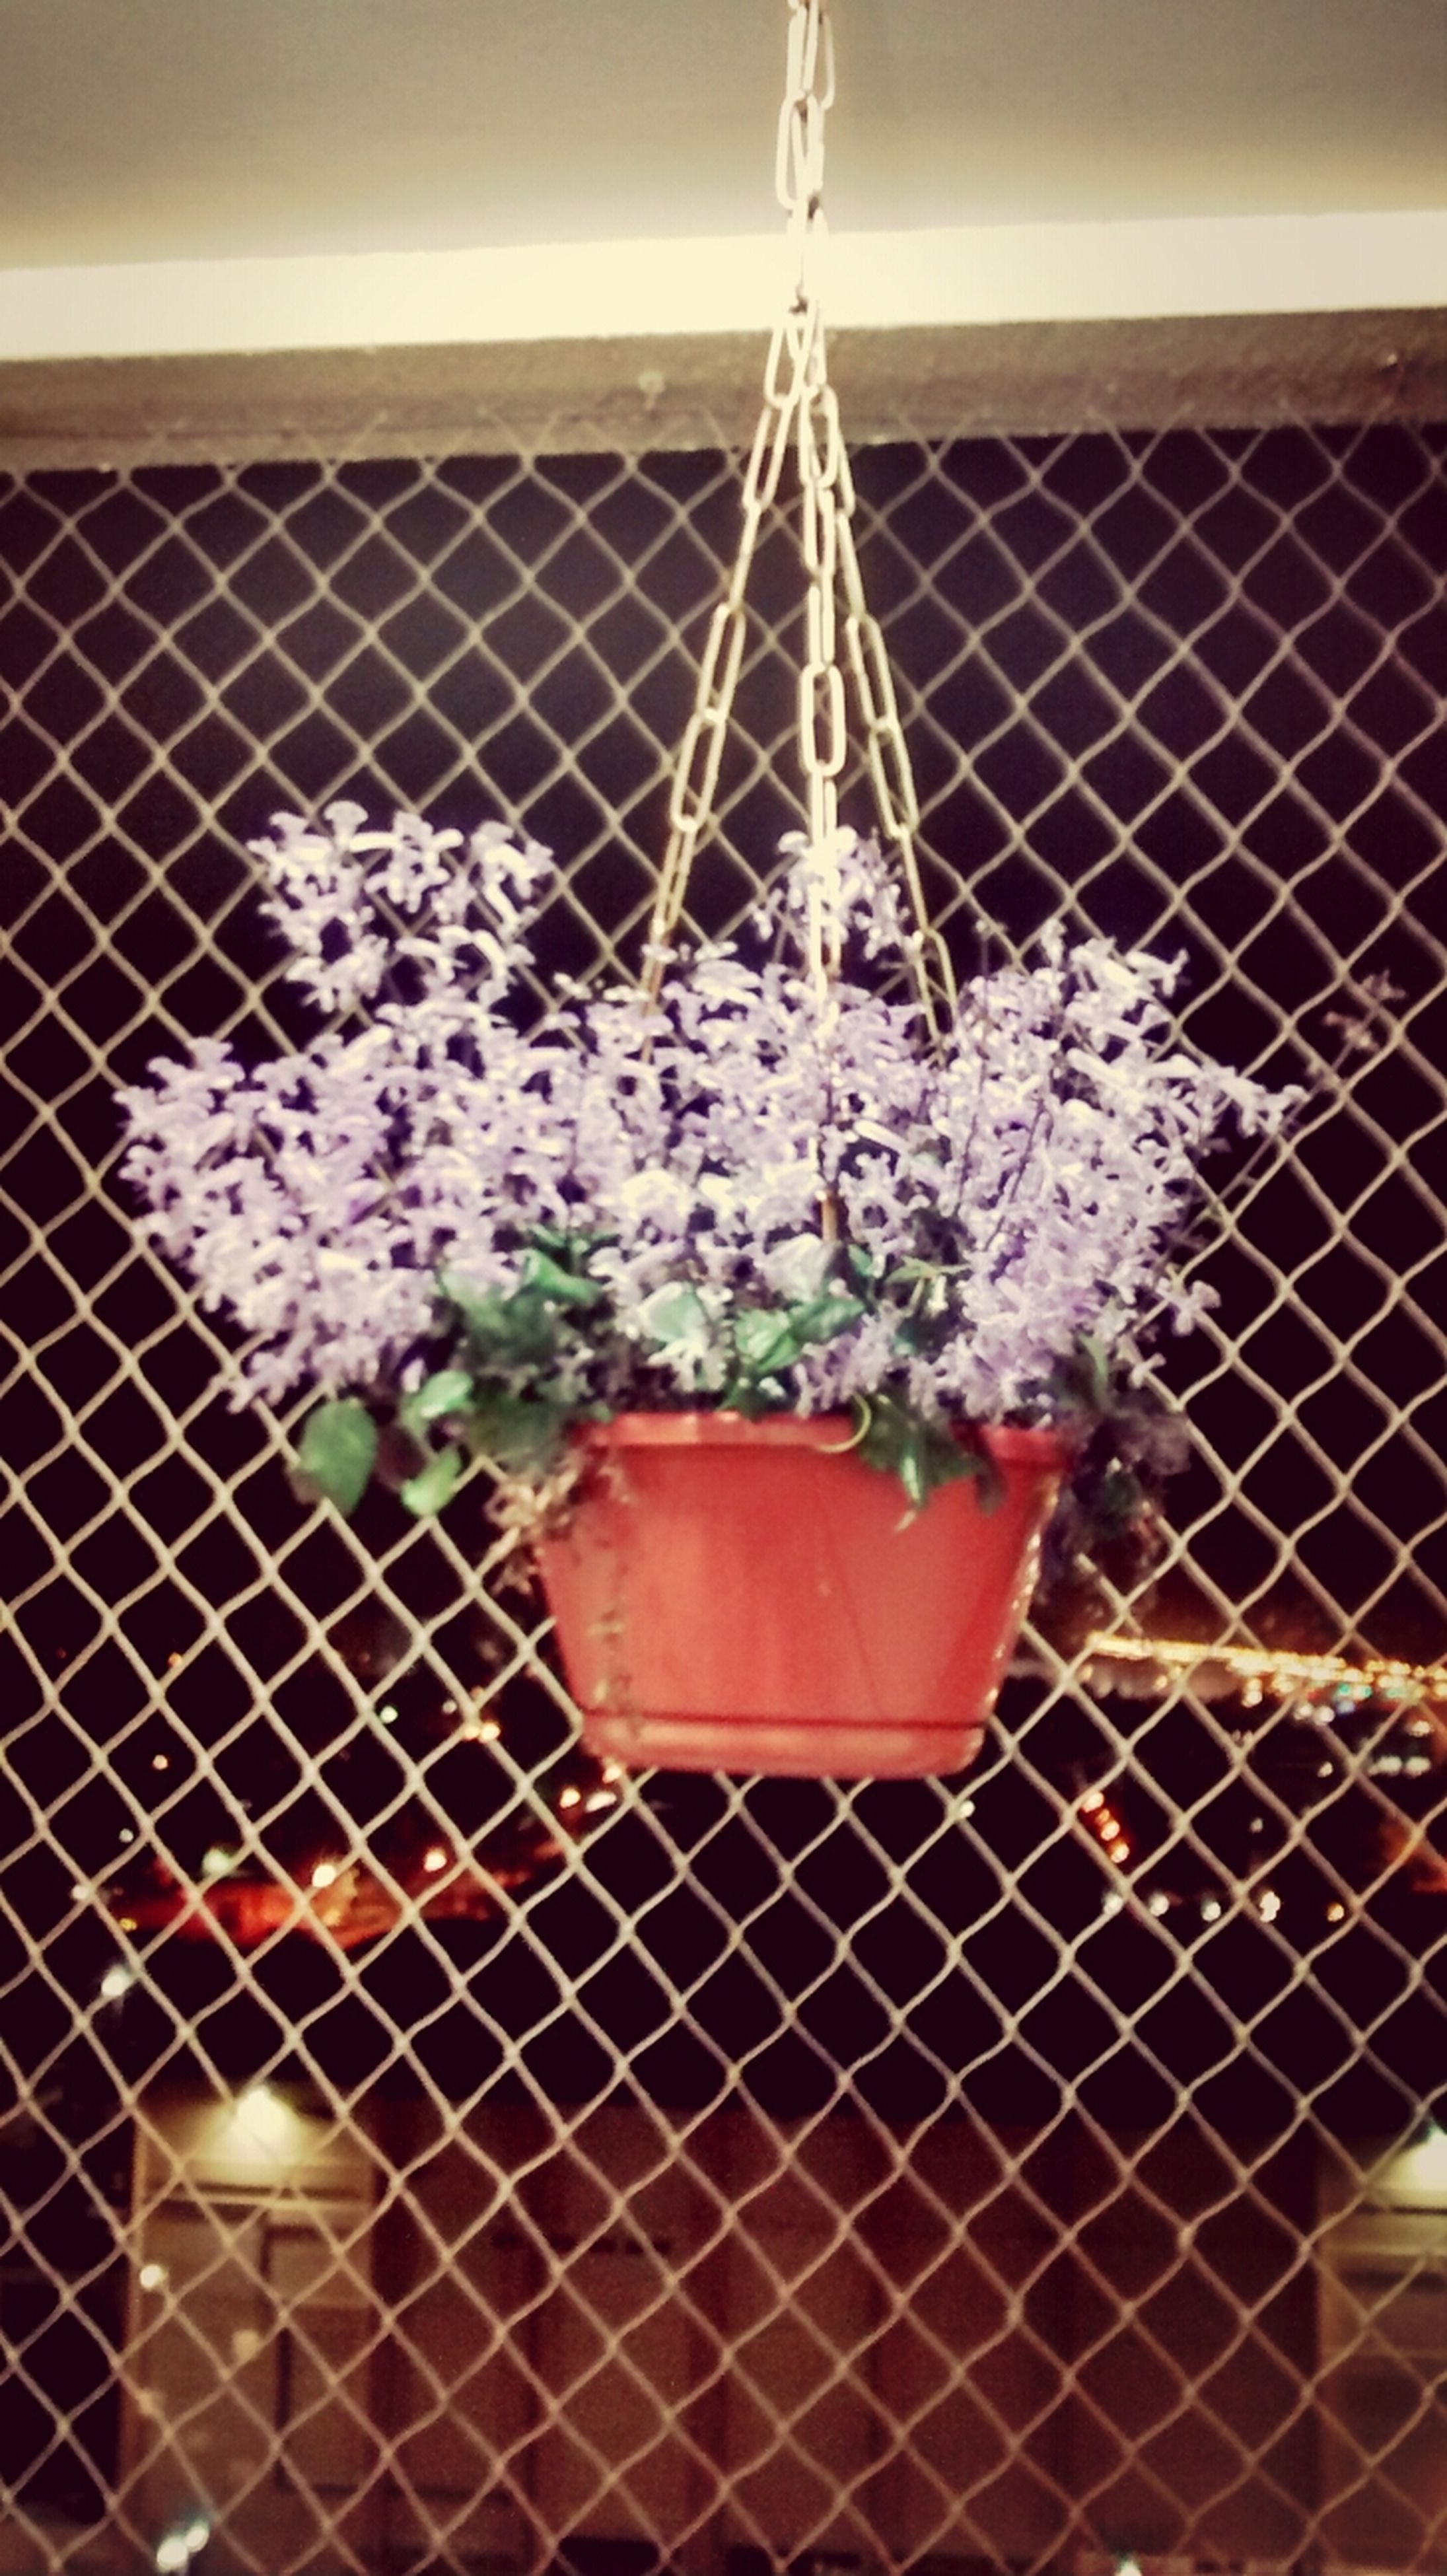 flower, fence, metal, chainlink fence, protection, safety, plant, security, close-up, growth, no people, wall - building feature, outdoors, fragility, day, nature, built structure, focus on foreground, potted plant, metallic